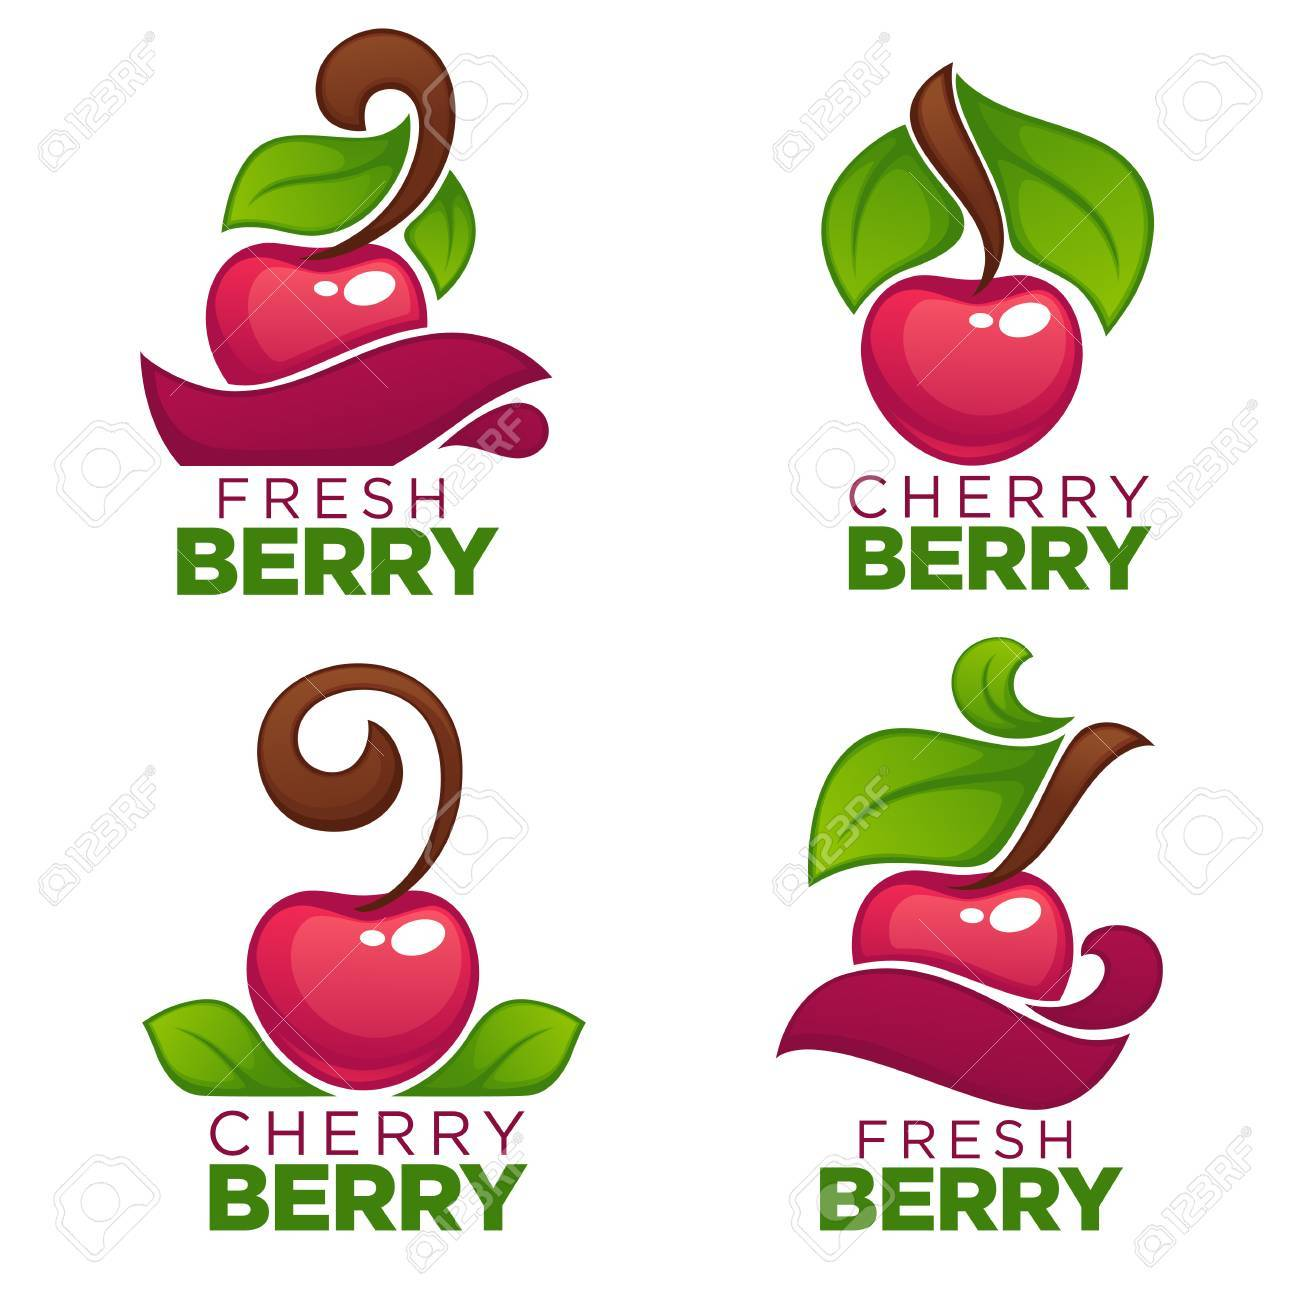 vector collection of juice stickers and cherry berry logo symbols